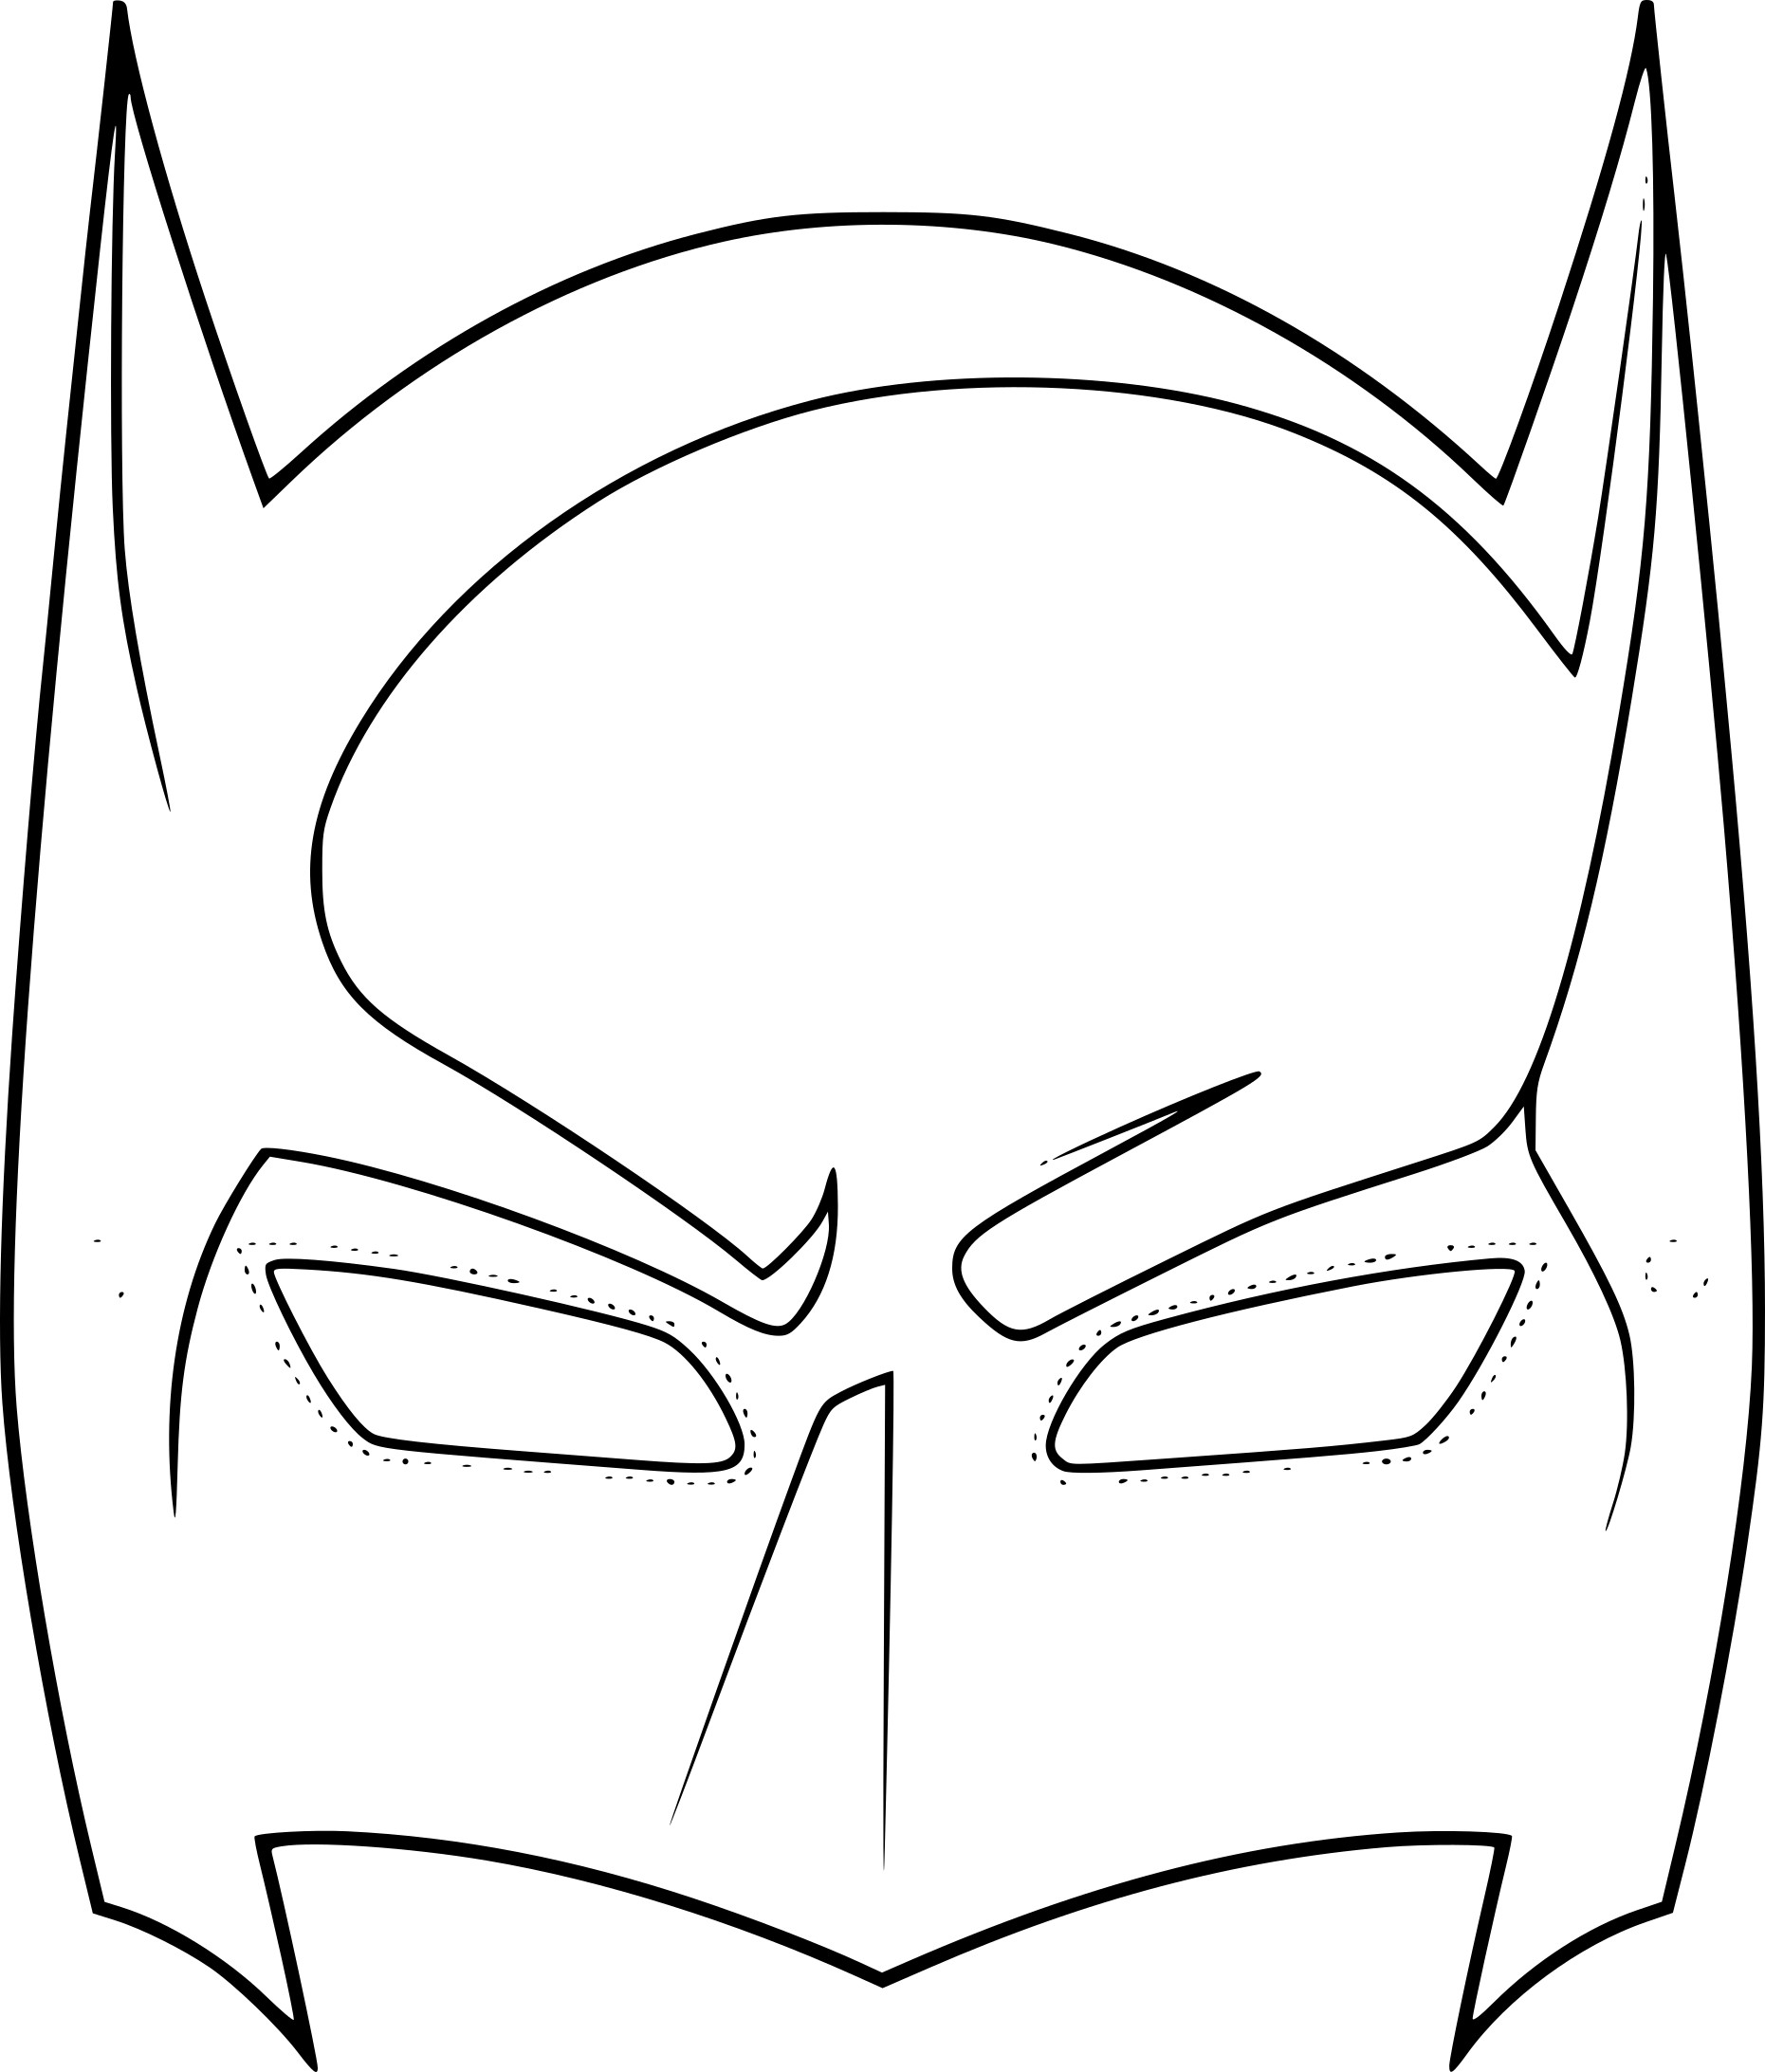 Coloriage masque batman imprimer - Masque de superman ...